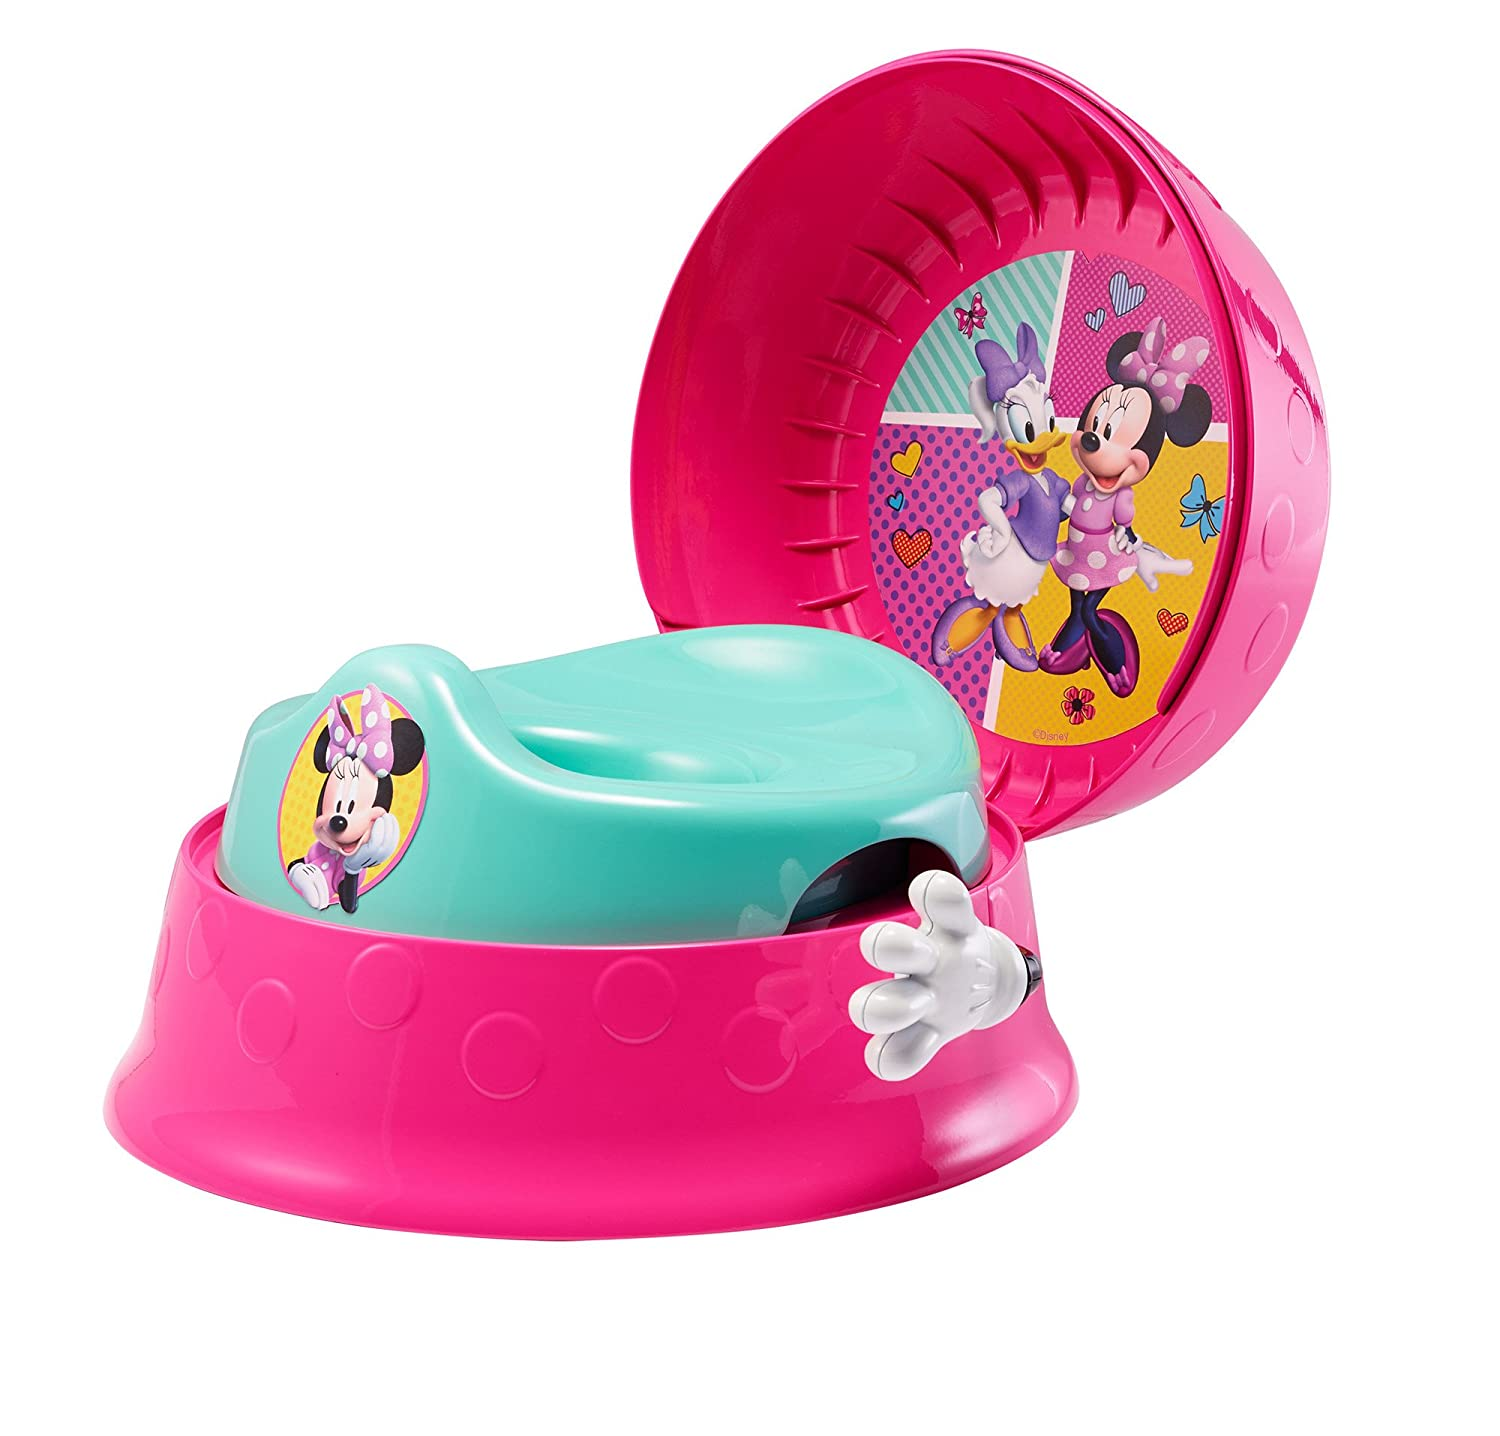 The First Years Disney 3-in-1 Potty System, Minnie Mouse TOMY Corp Y10871A1